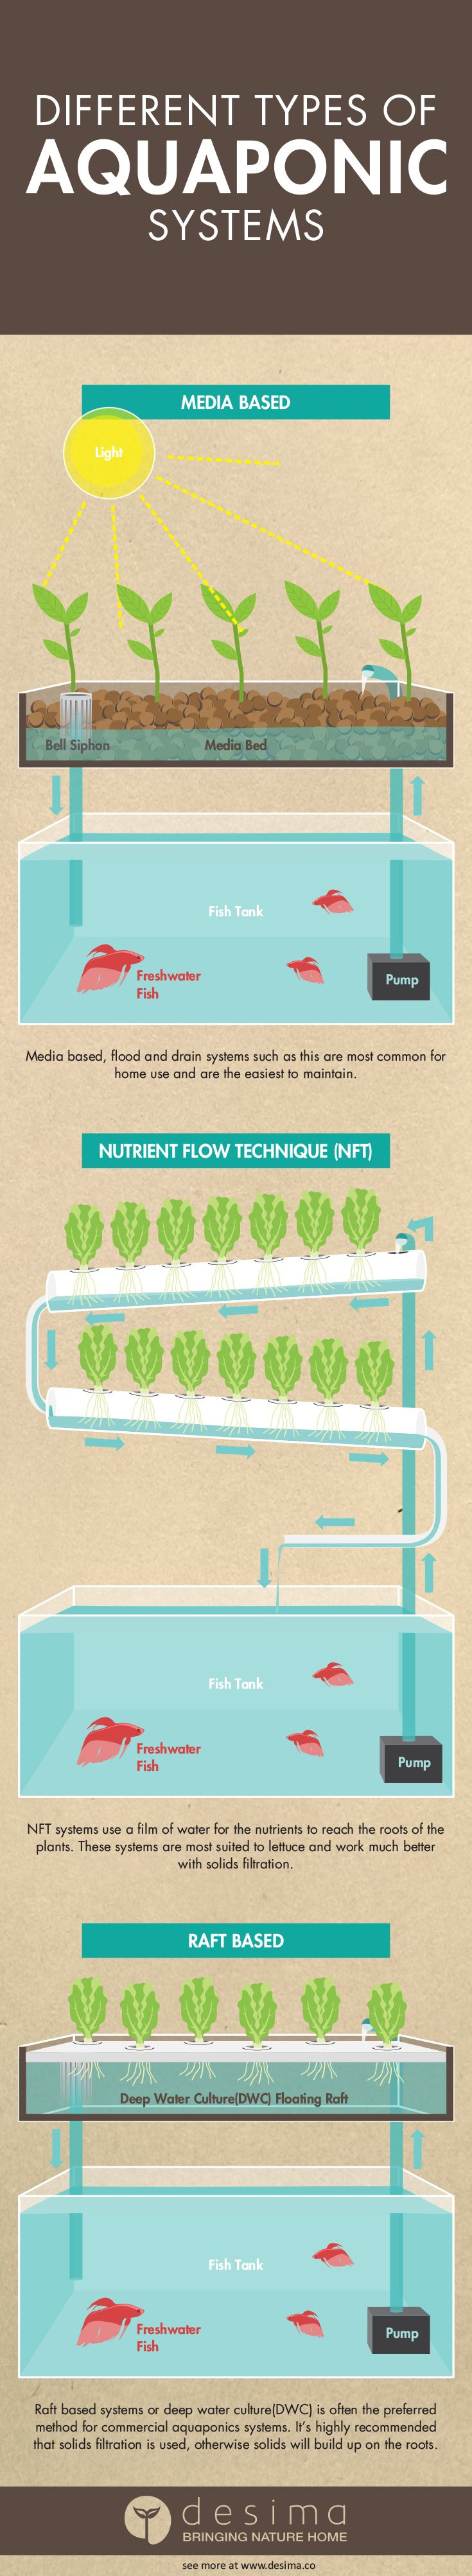 There are many different type of aquaponics systems. These include media  based, NFT(nutrient flow techinque) and DWC (deep water culture). Use this  infographic to help choose the right system for you.